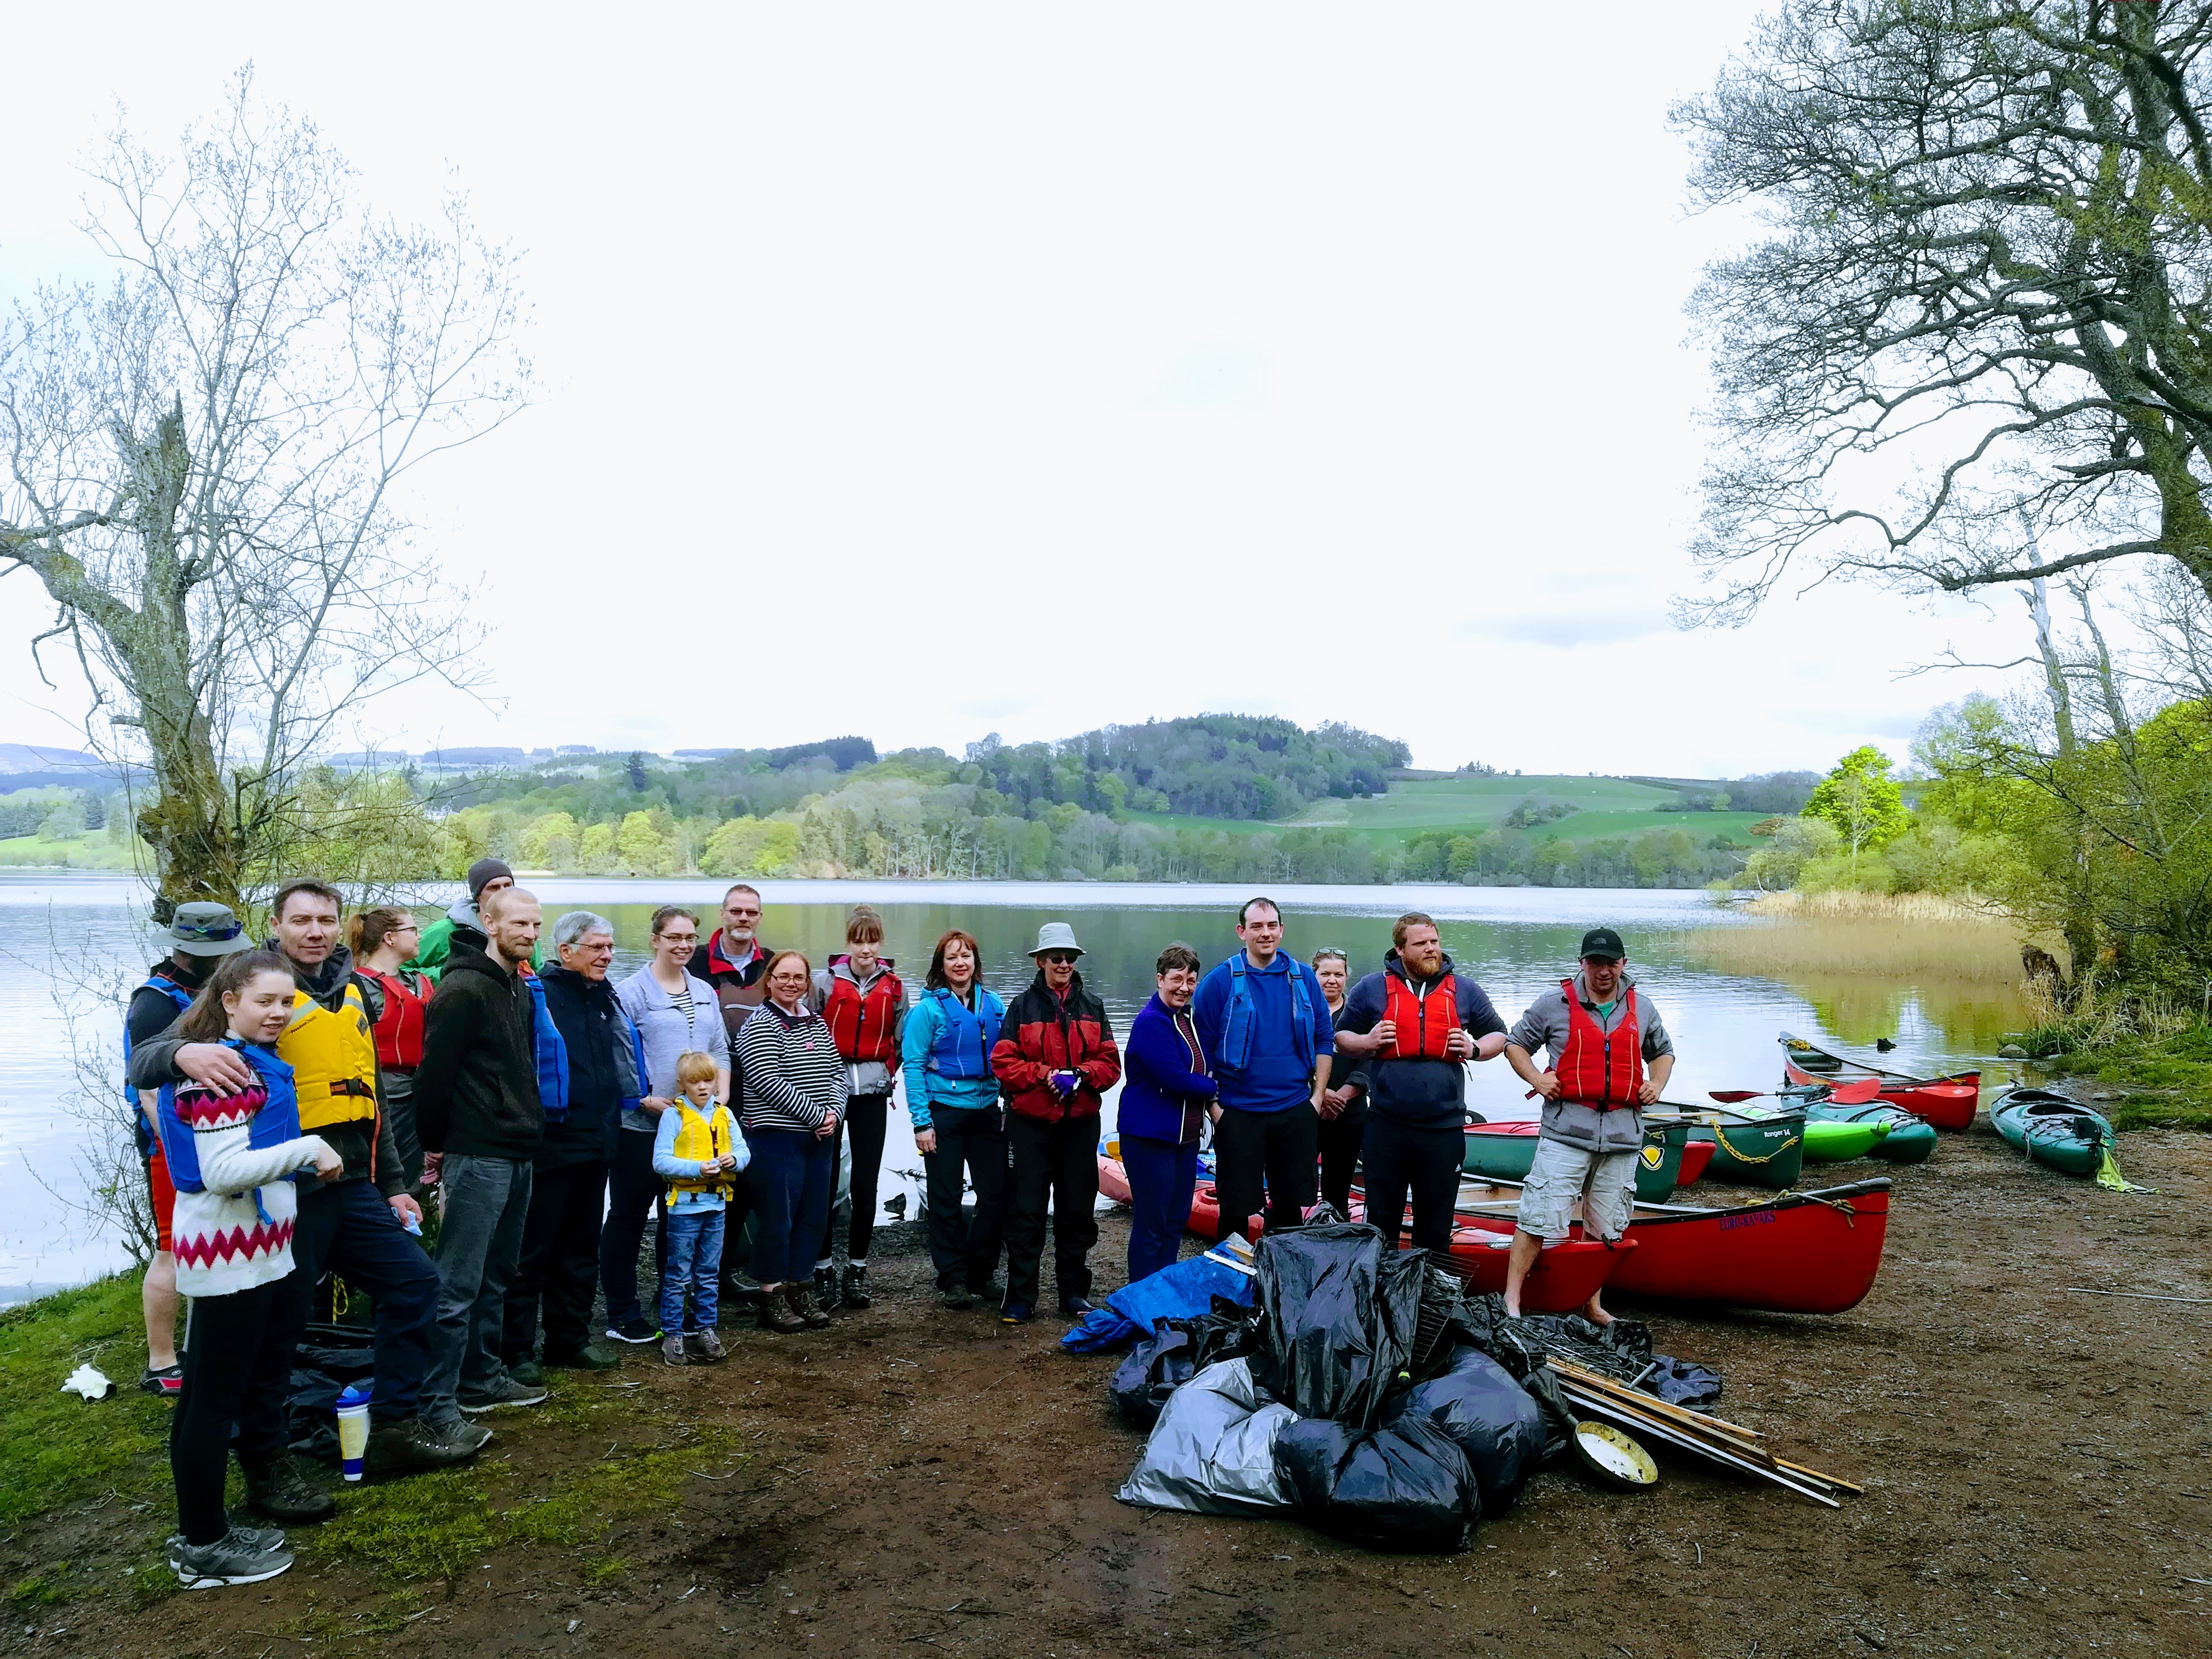 Litter Free Paddle at Clunie Loch April 2019